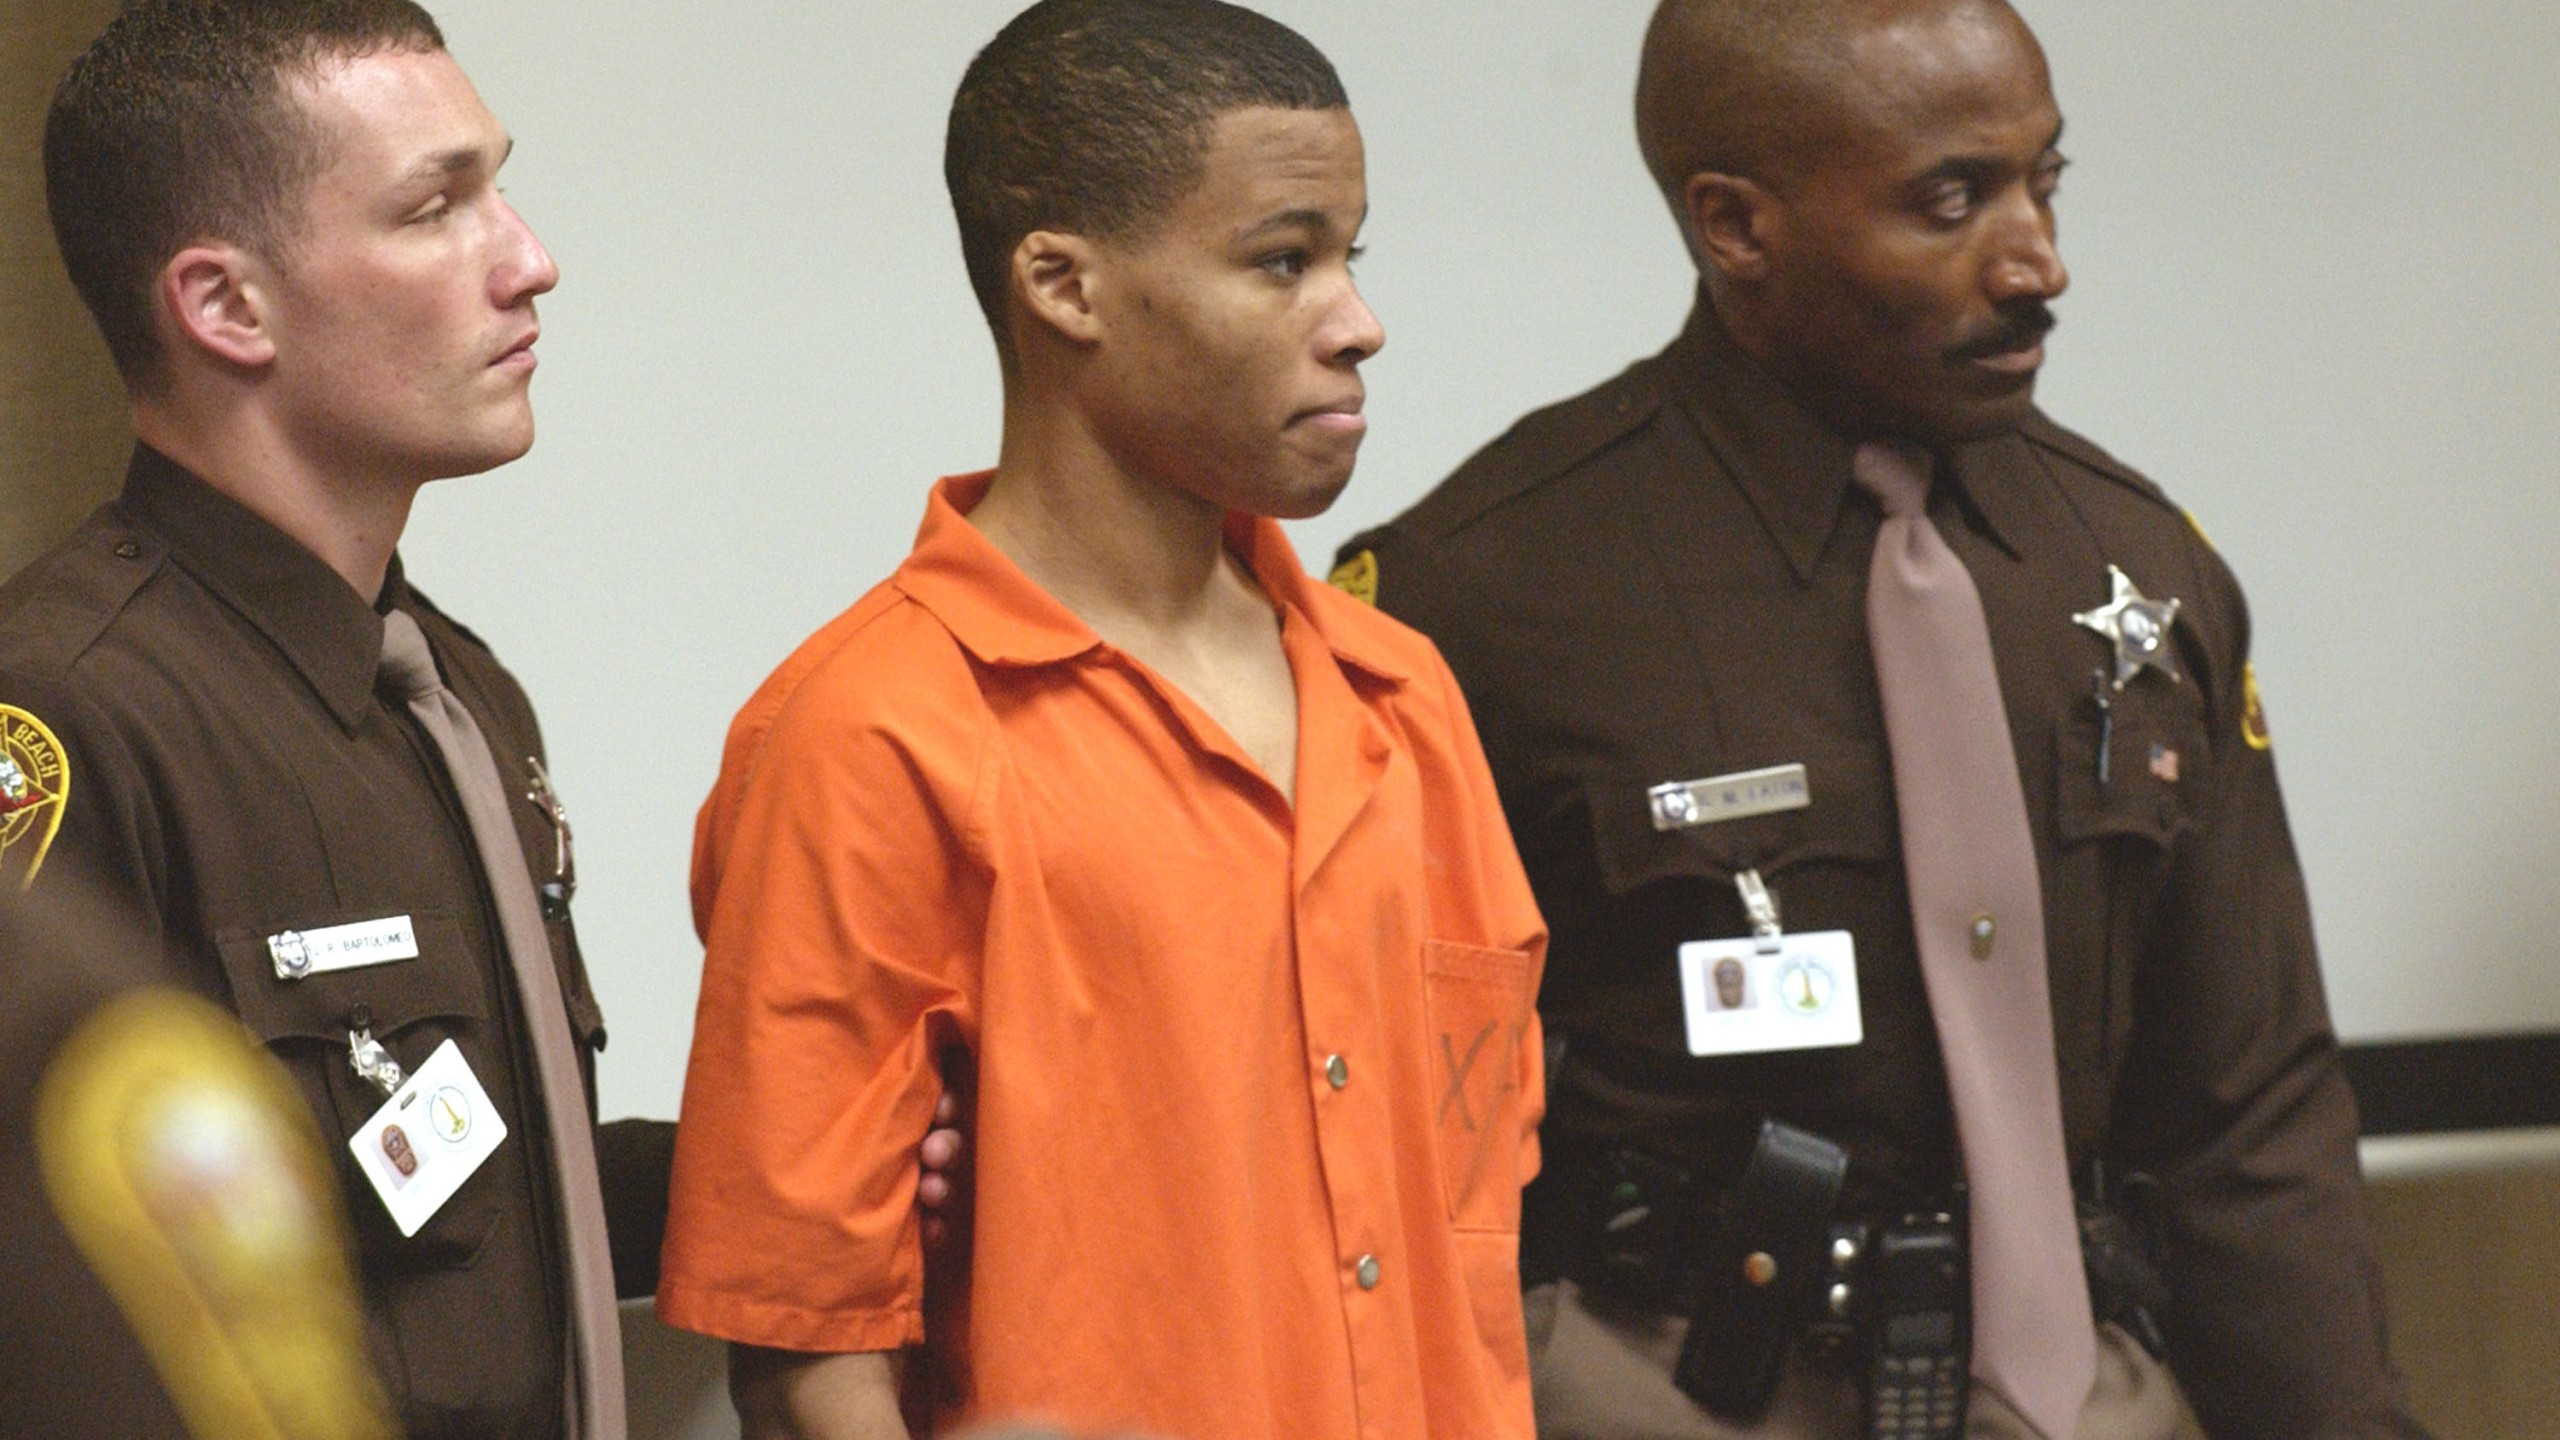 Sniper suspect Lee Boyd Malvo (C) is escorted by deputies as he is brought into court to be identified by a witness during the murder trial in courtroom 10 at the Virginia Beach Circuit Court October 22, 2003 in Virginia Beach, Virginia. (Credit: Davis Turner-Pool/Getty Images)